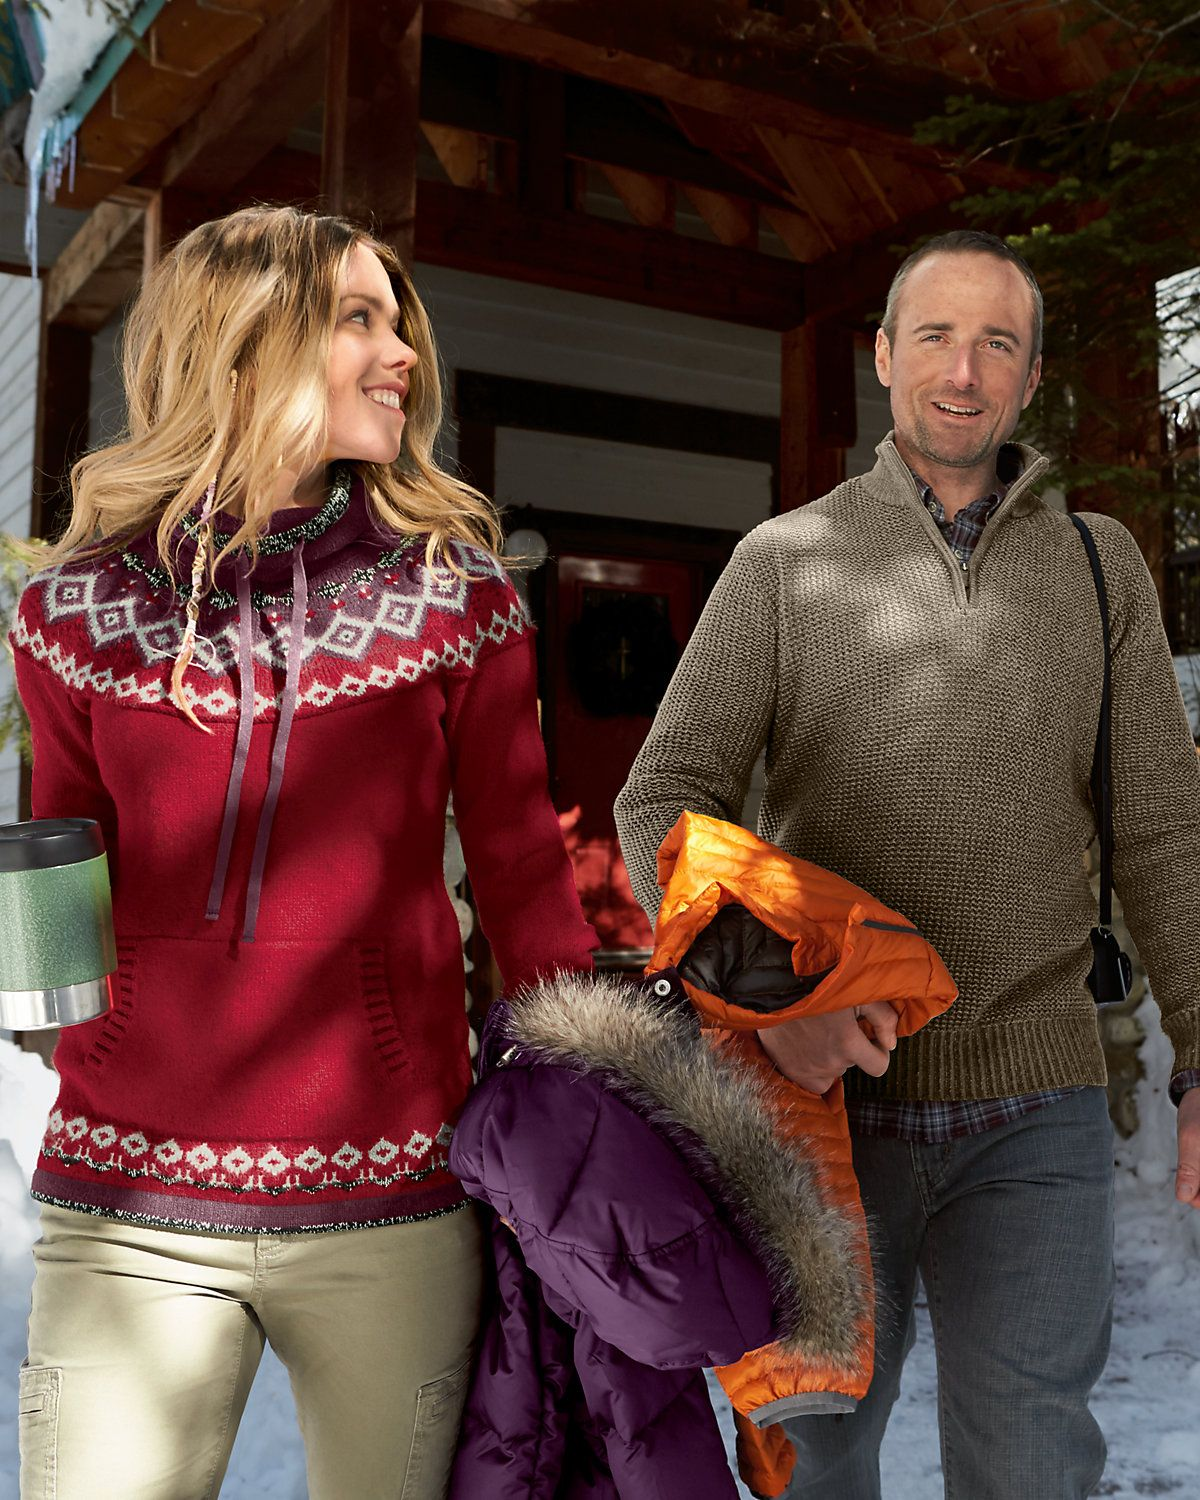 Echo Ridge Pullover Sweater | Eddie Bauer i like the style of sweater